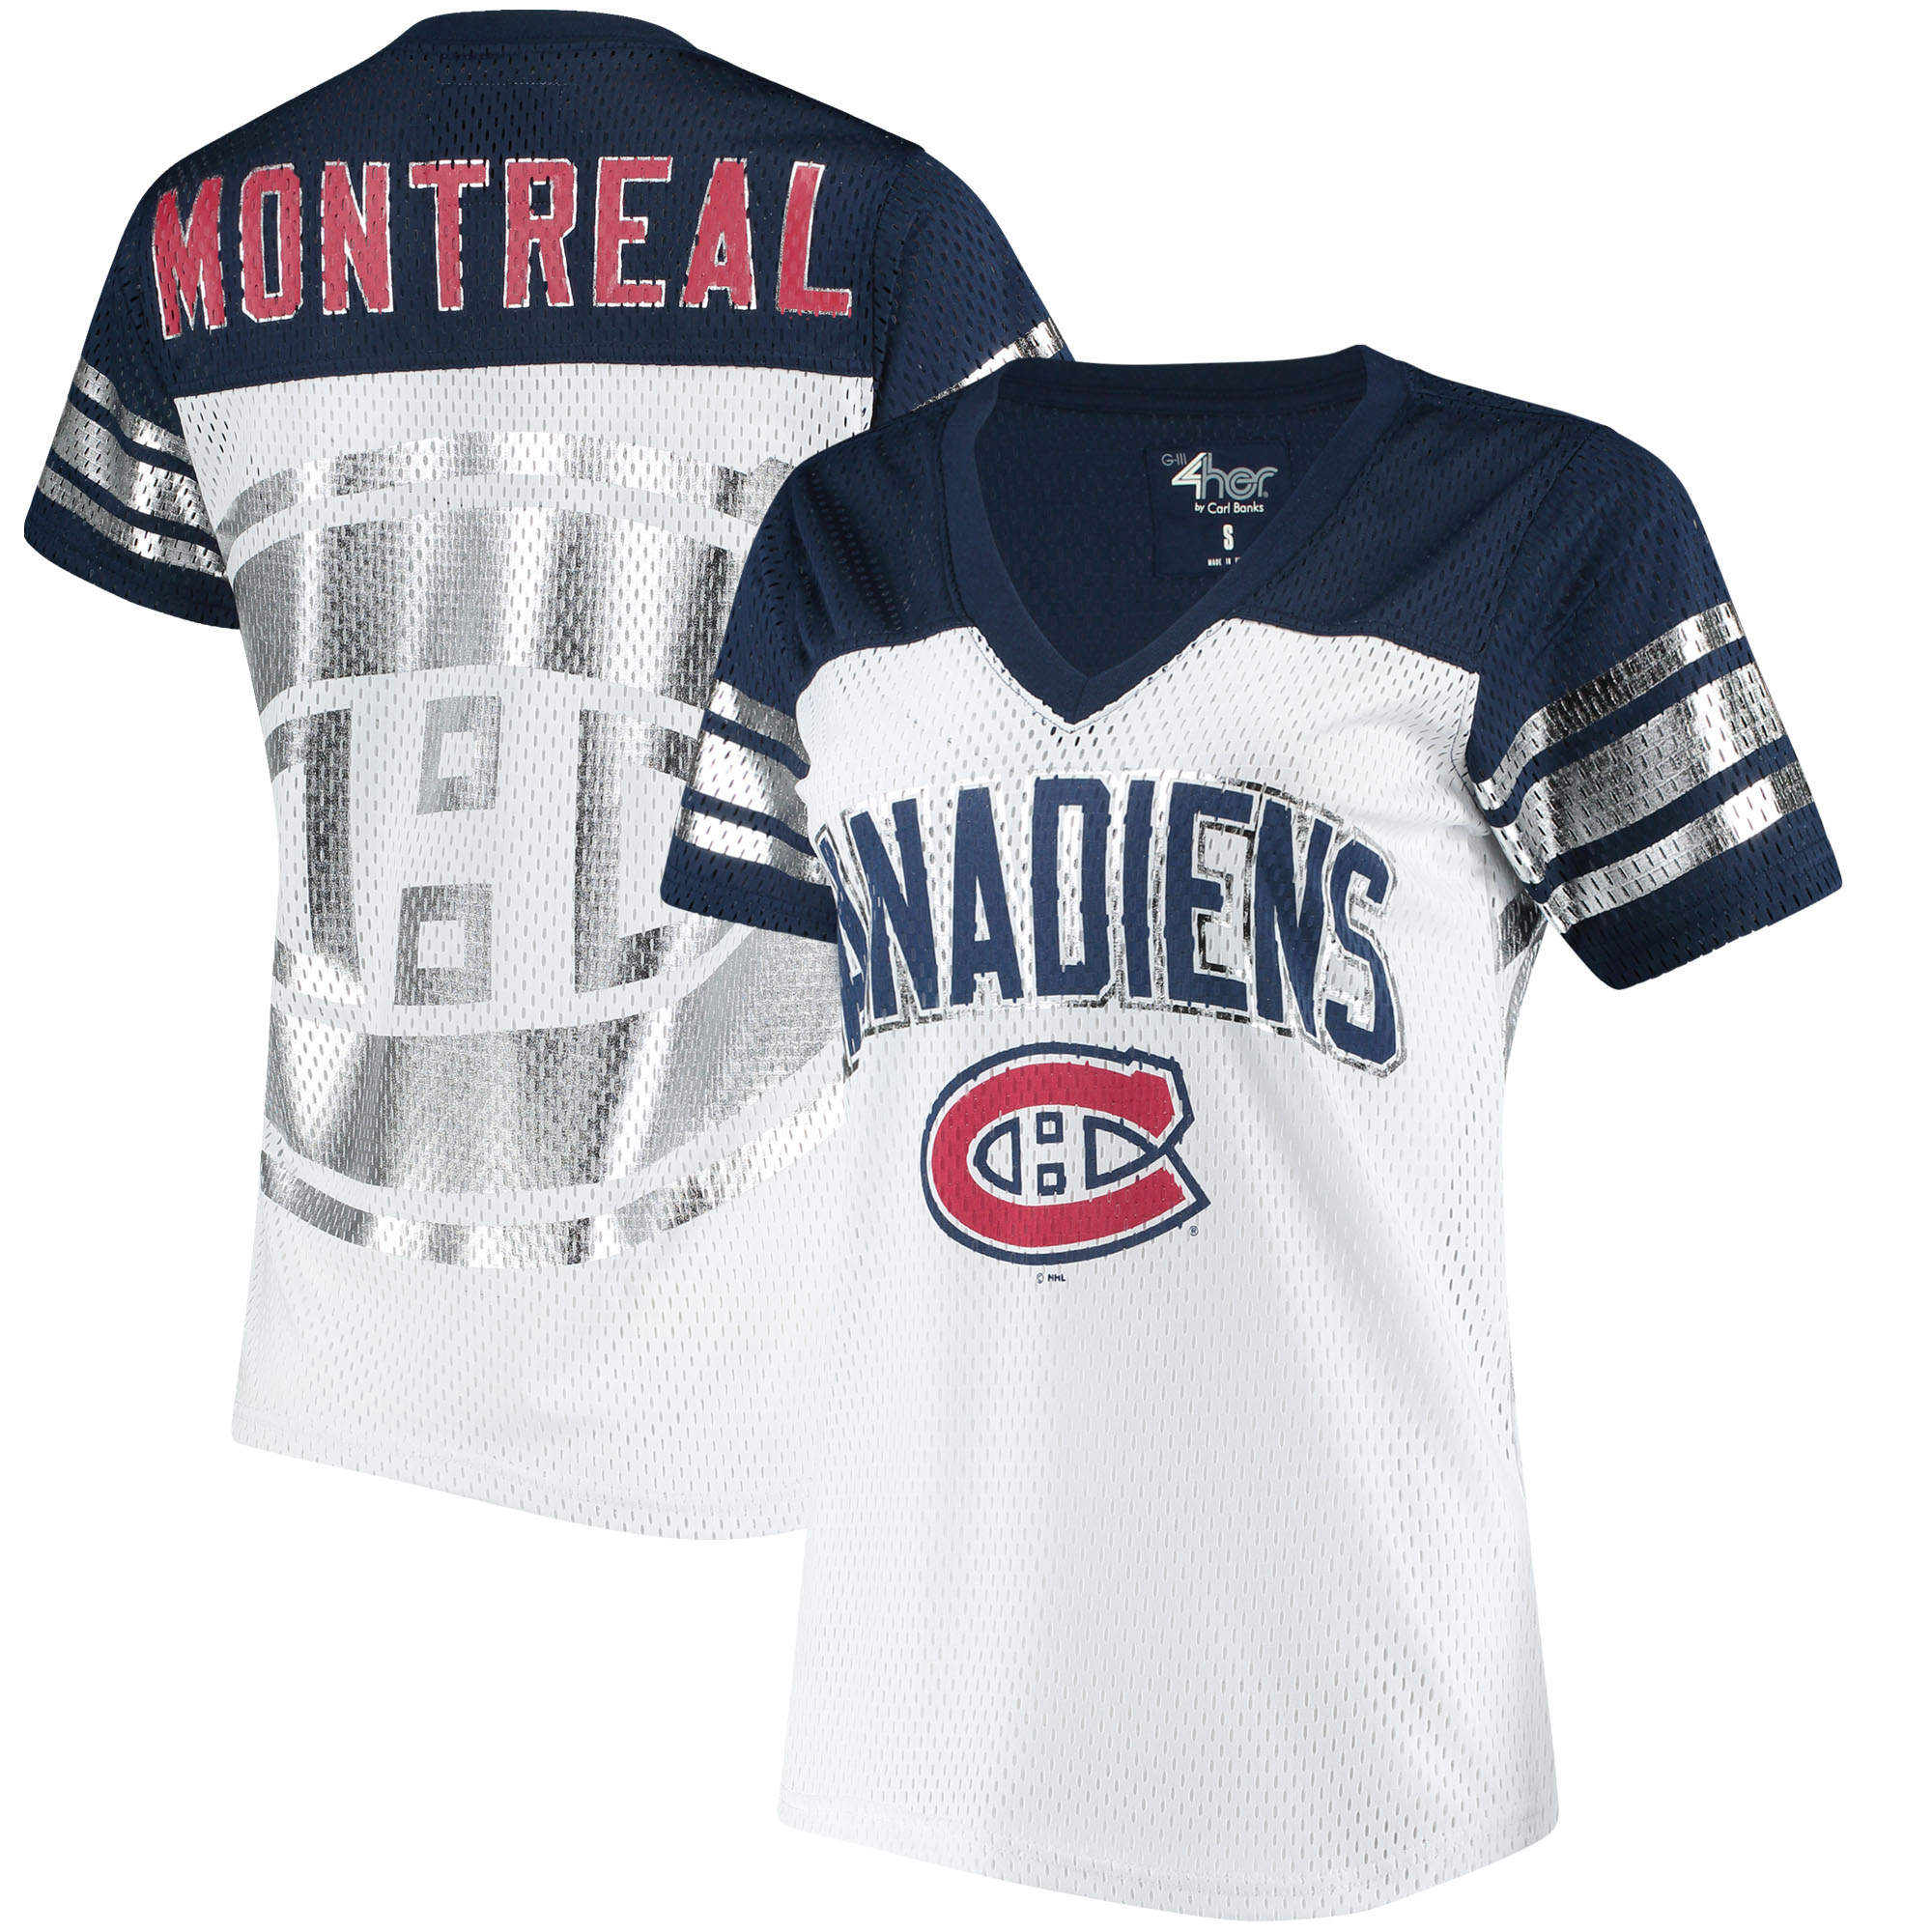 Montreal Canadiens G-III 4Her by Carl Banks Women's All American V-Neck T-Shirt - White/Navy